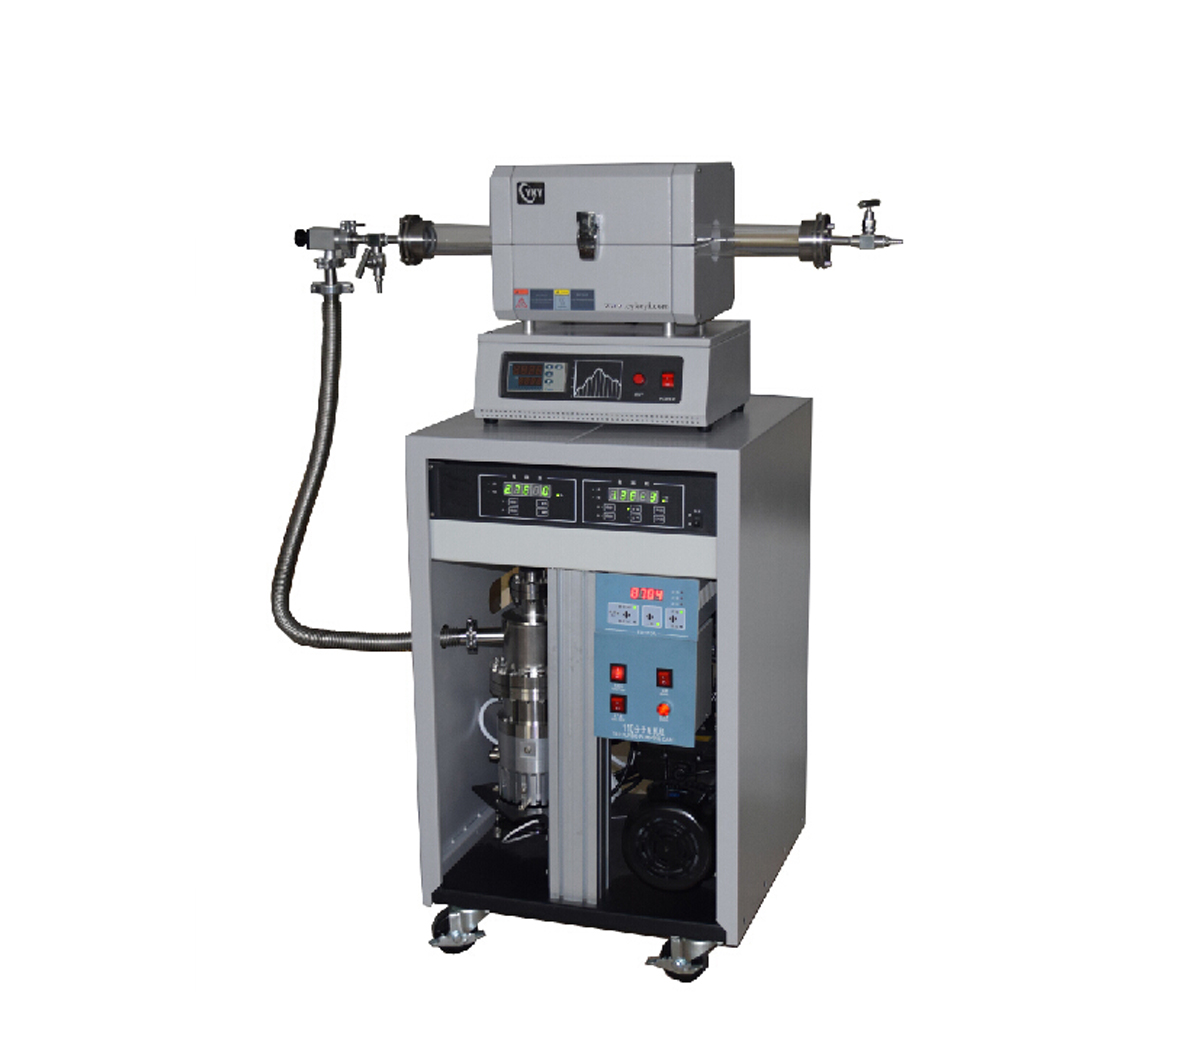 Laboratory 1200℃ High Temperature High Vacuum Tube Furnace CY-O1200S-GZK110